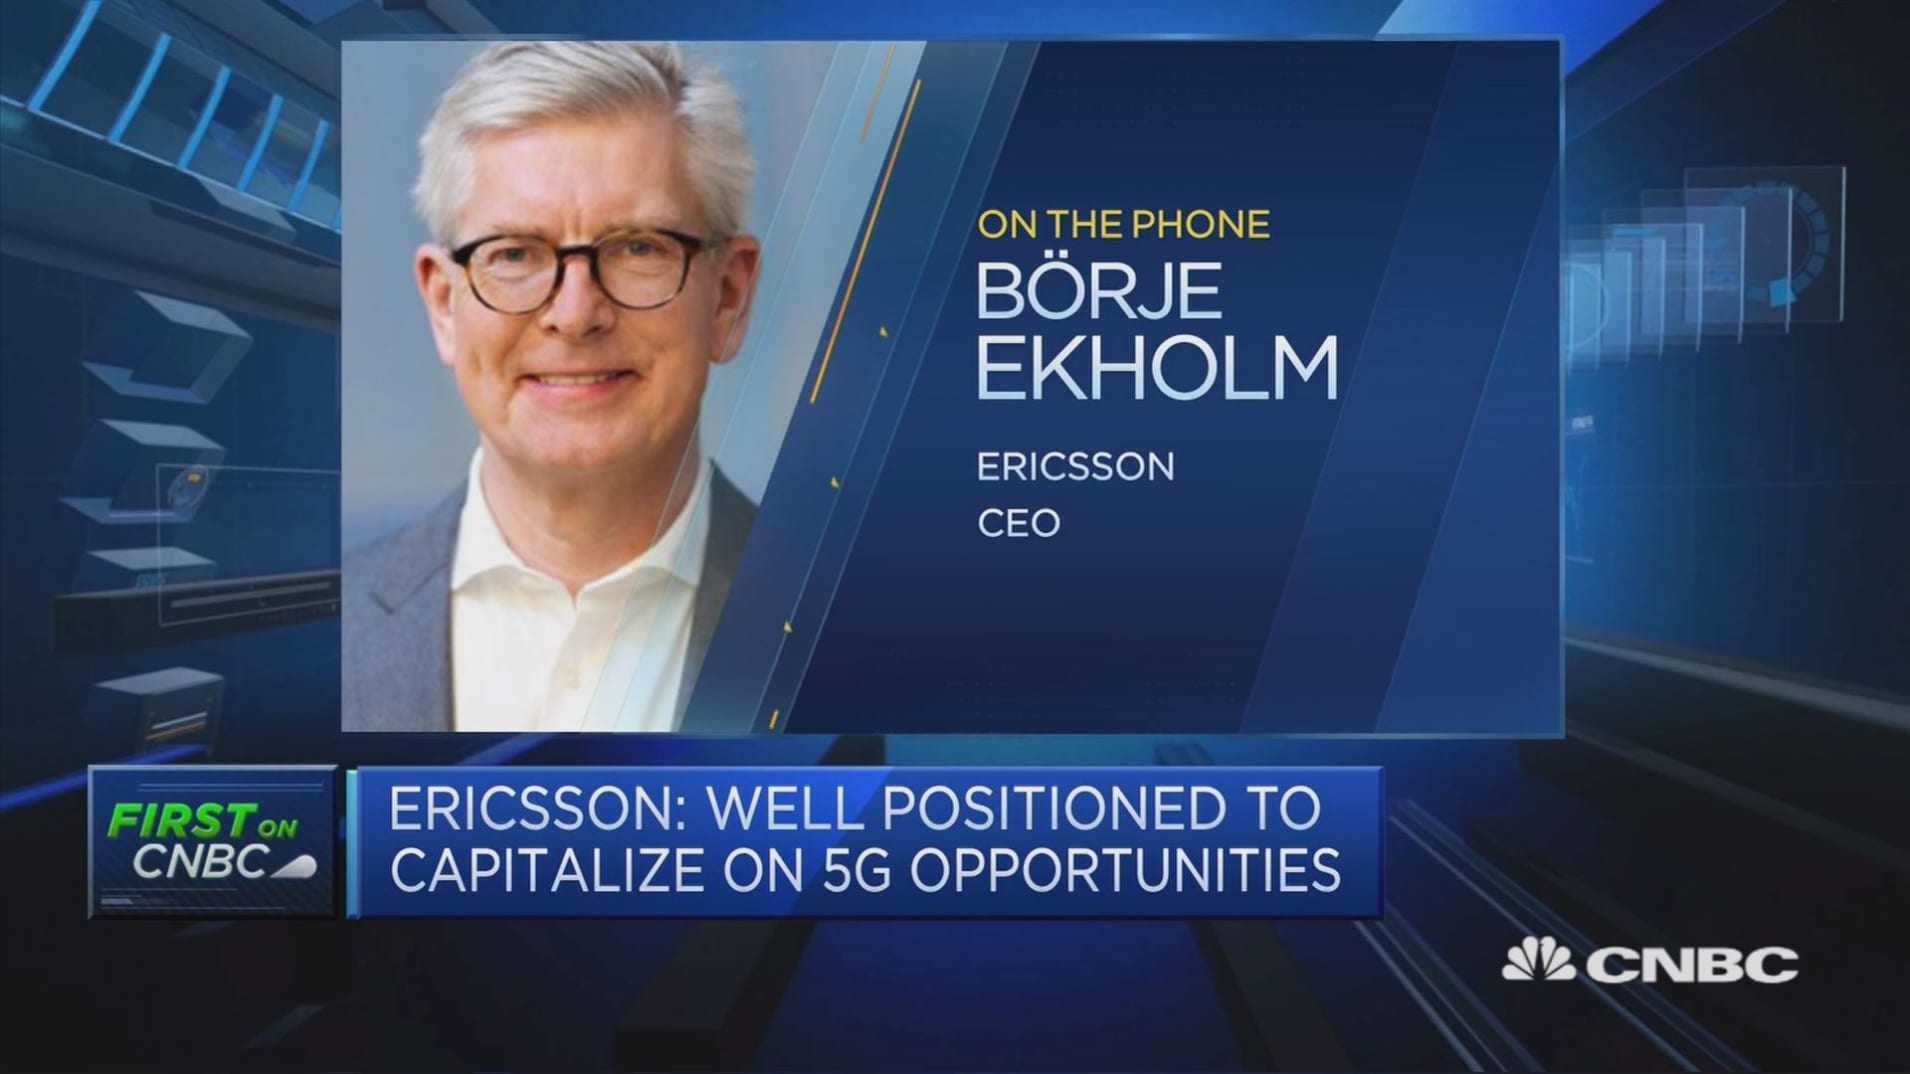 We won't use price as a weapon to improve margins, Ericsson CEO says